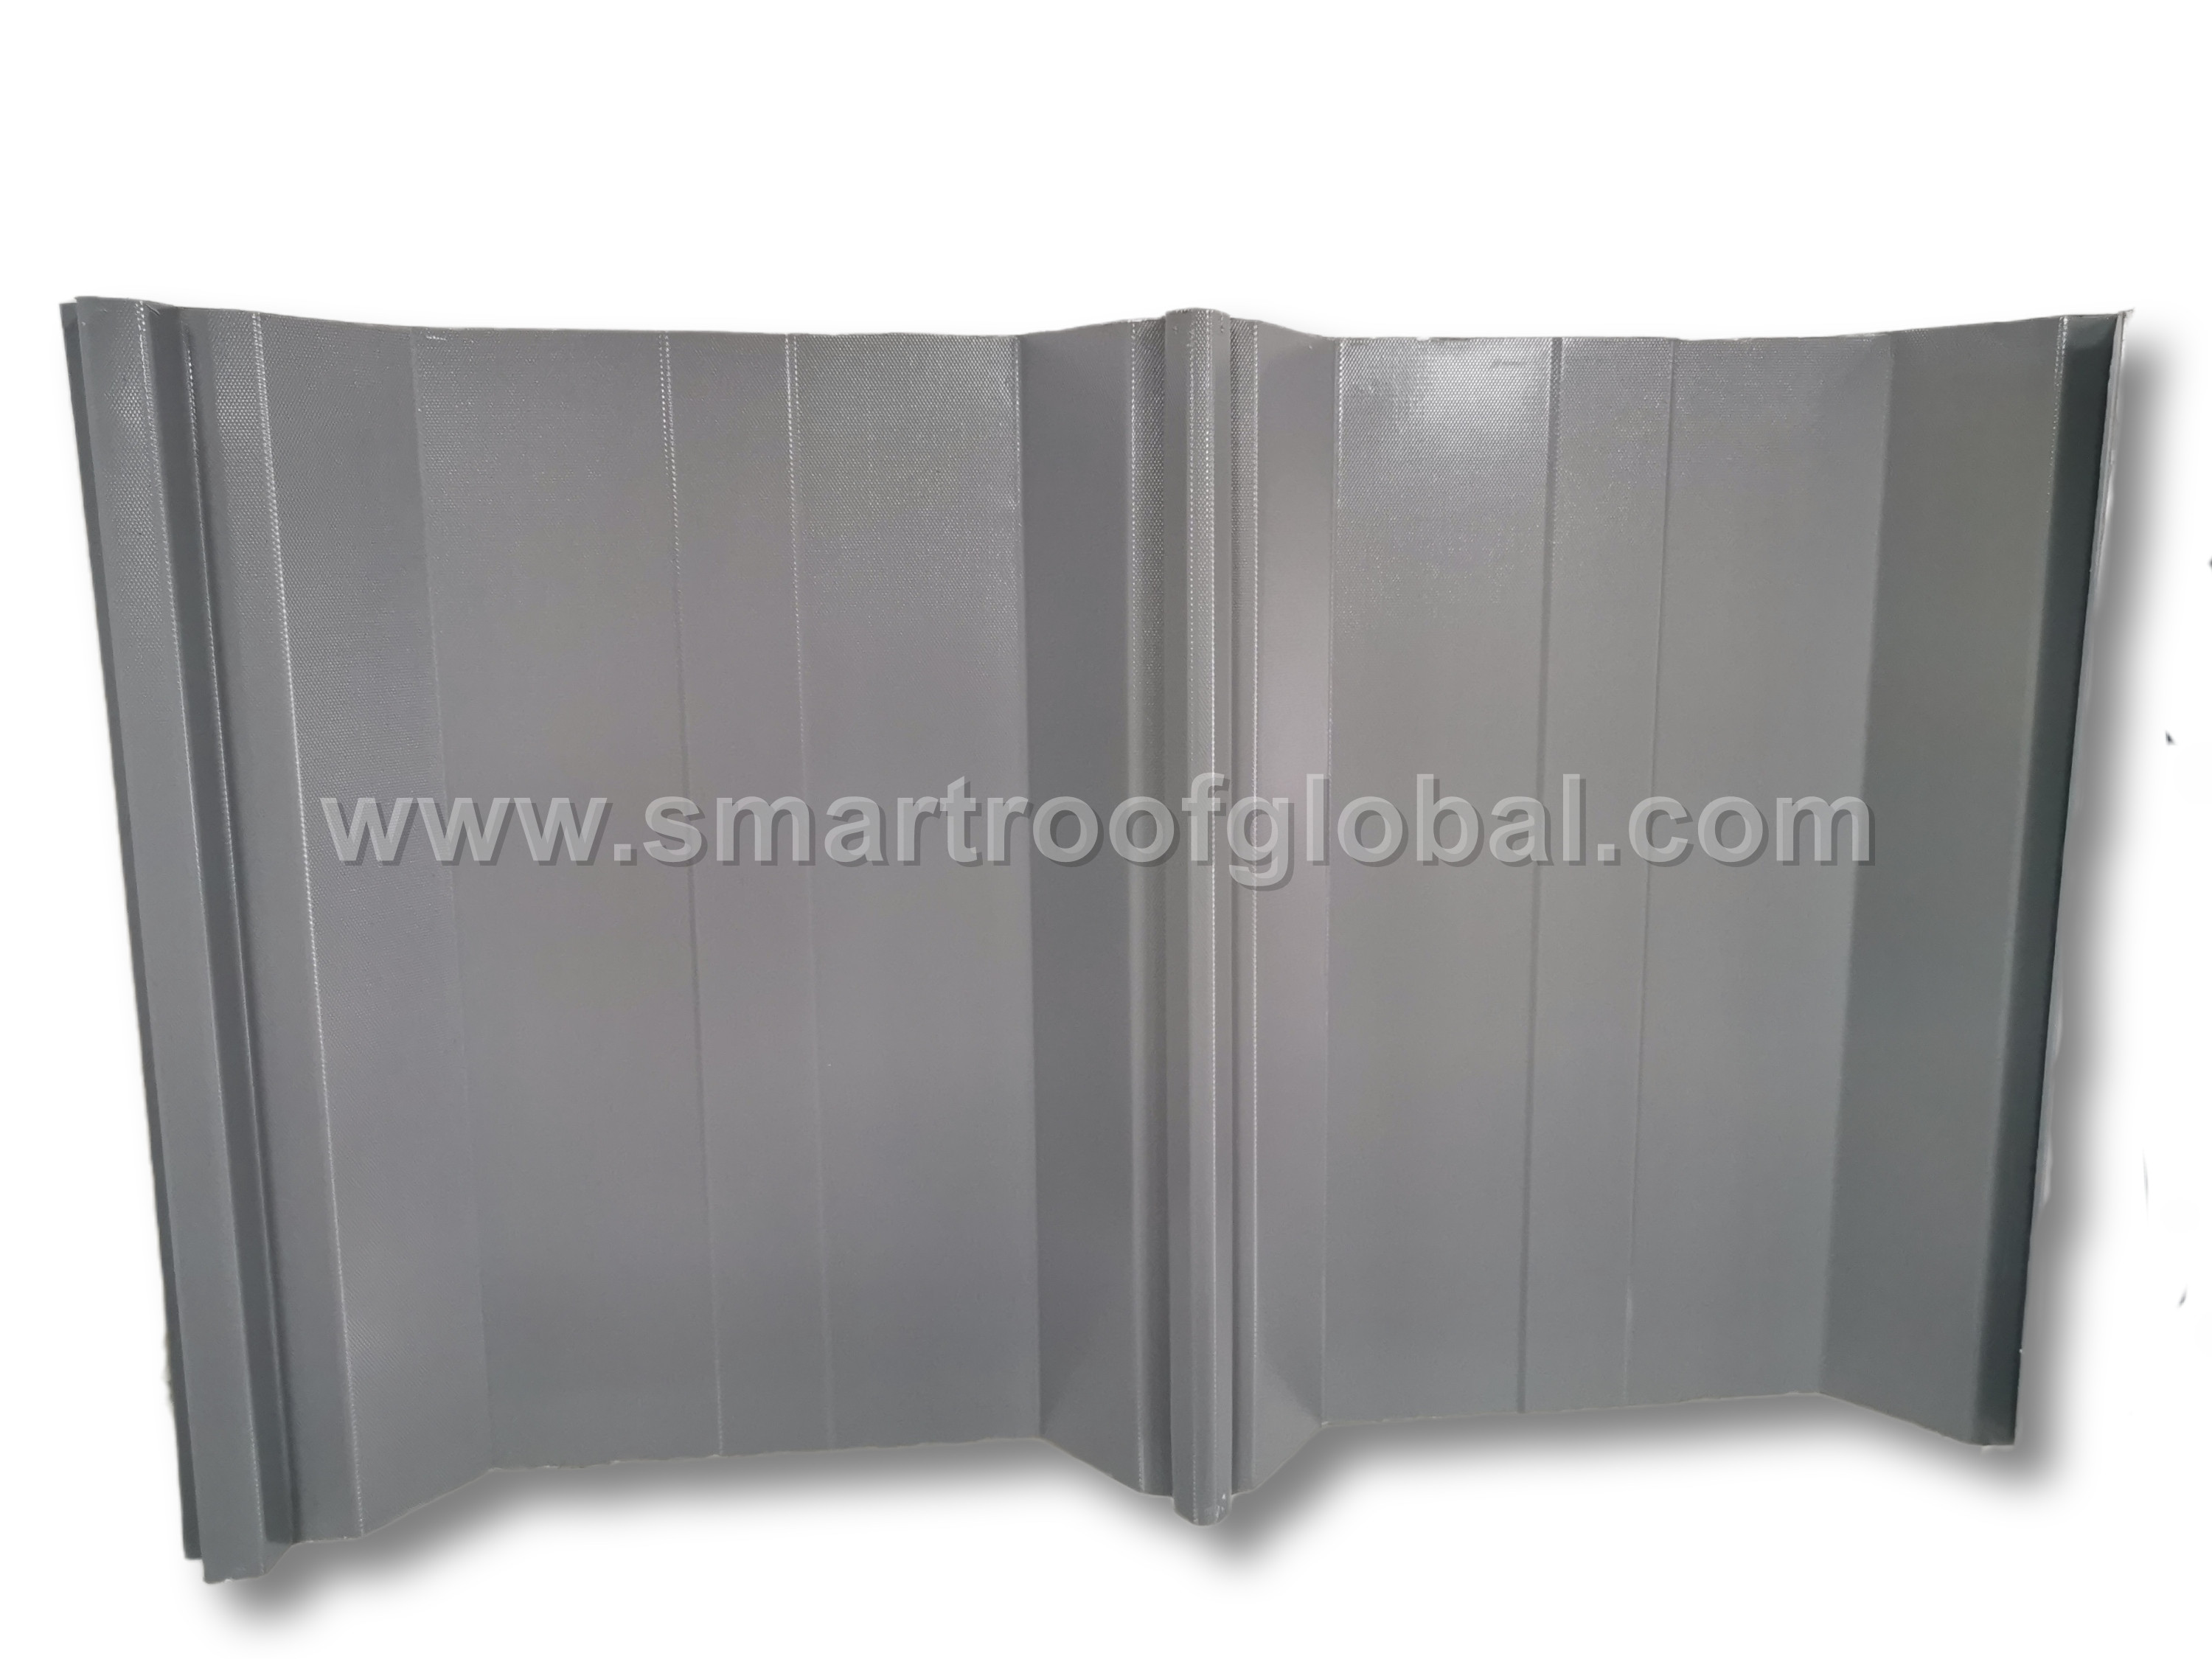 Corrugated Steel Roofing Featured Image